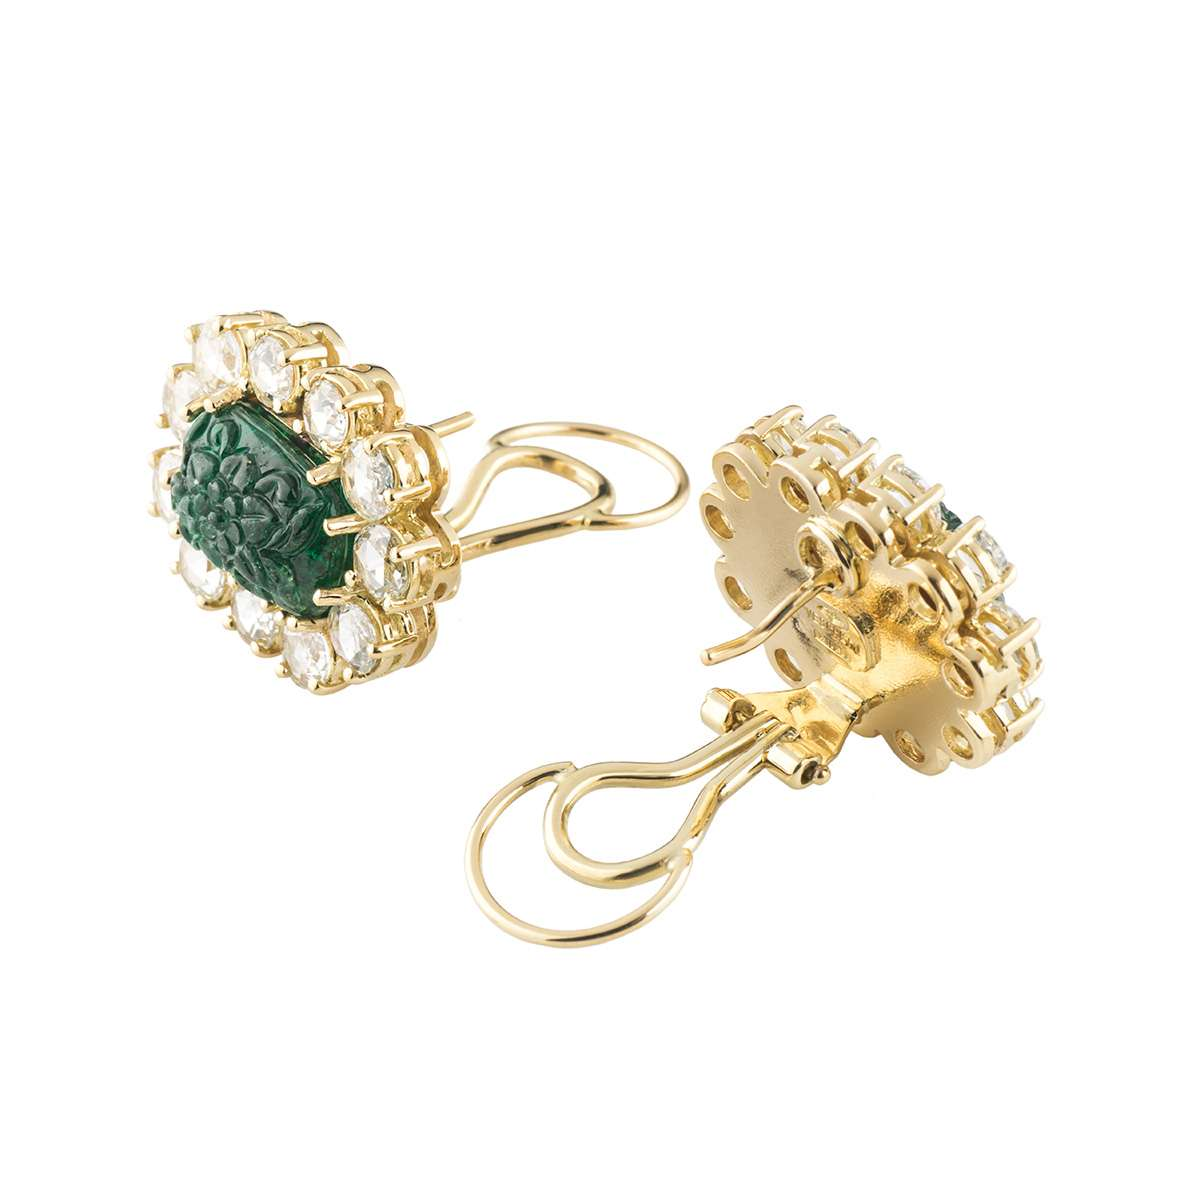 Yellow Gold Diamond and Emerald Earrings by Veschetti